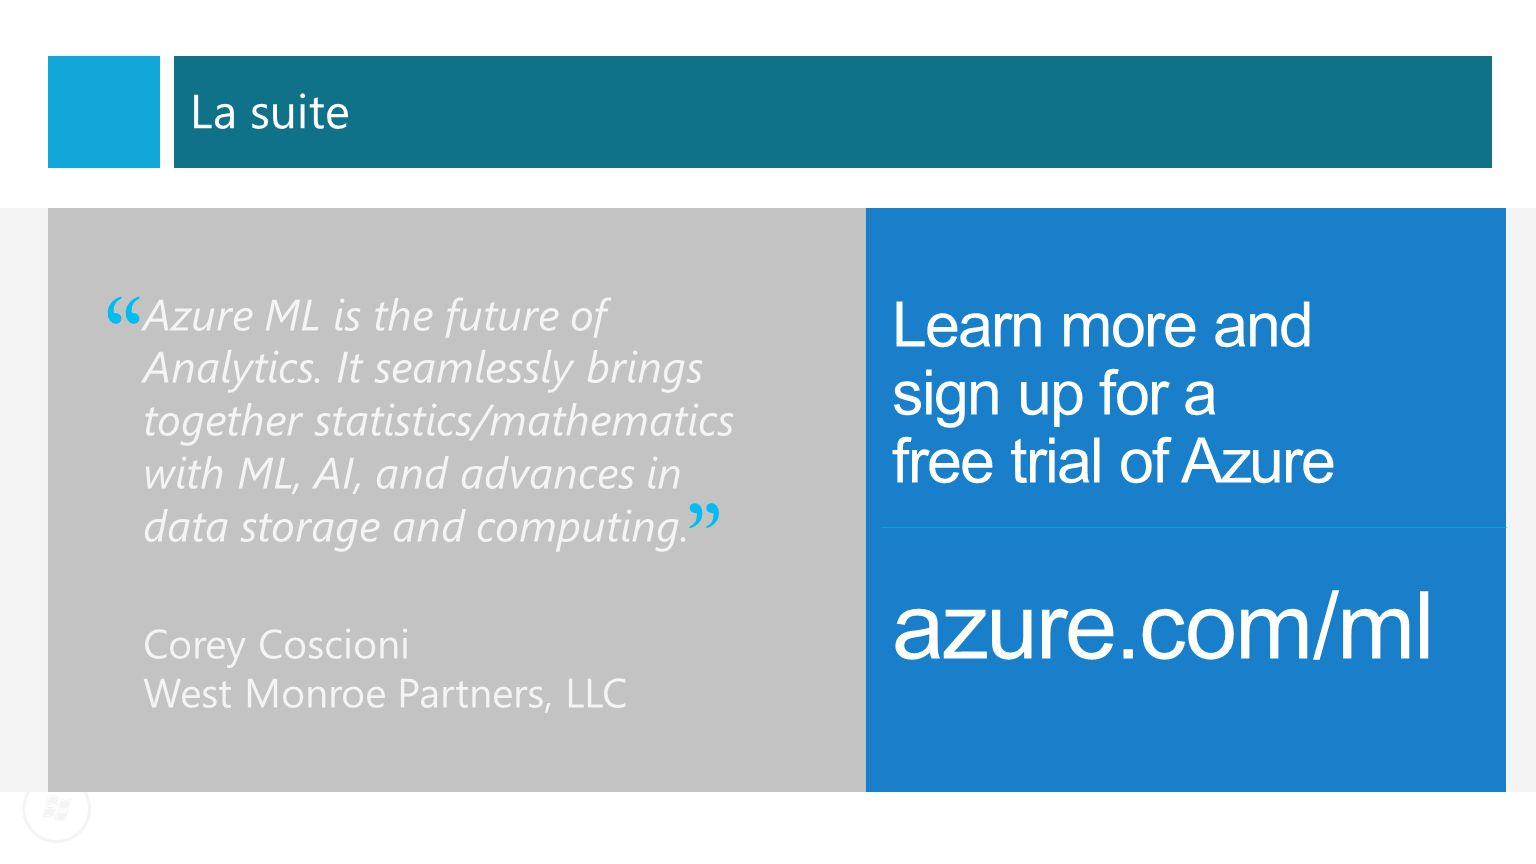 azure.com/ml Learn more and sign up for a free trial of Azure